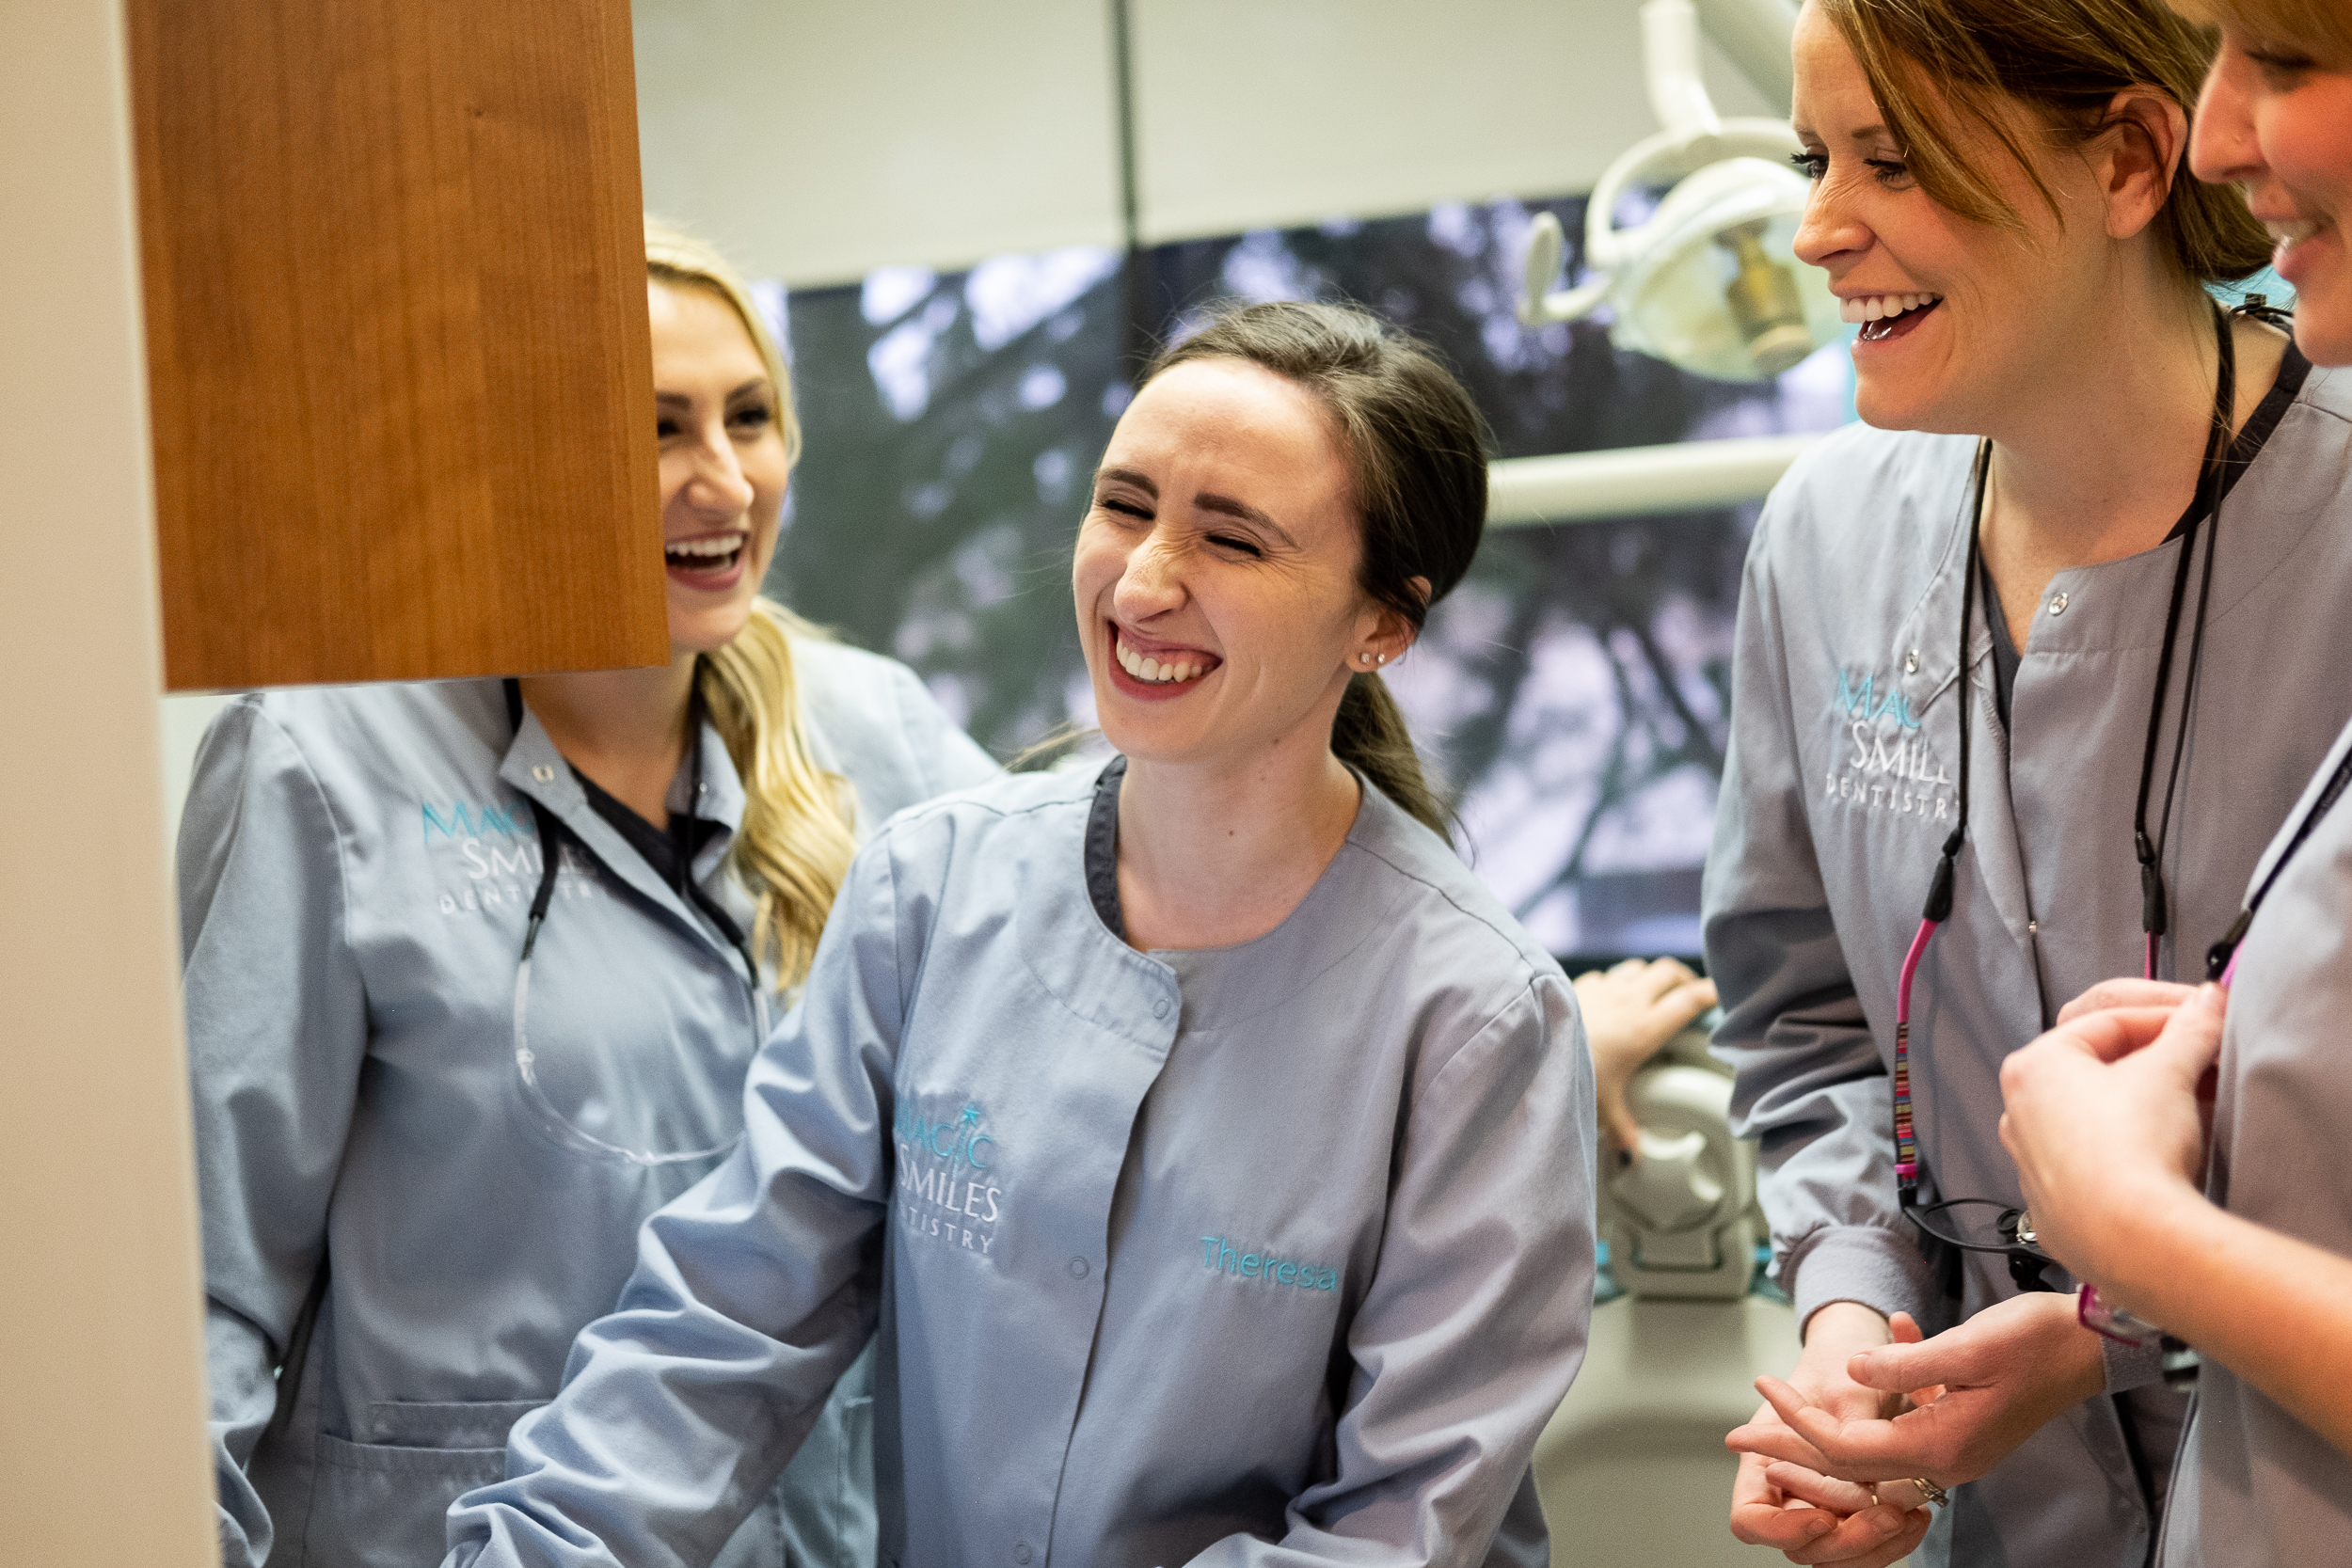 Staff Magic Smiles Dentistry 2019 El Dorado Hills California Dentist 48 - Unique, Focused Care for Kids — Whatever Their Individual Needs Are